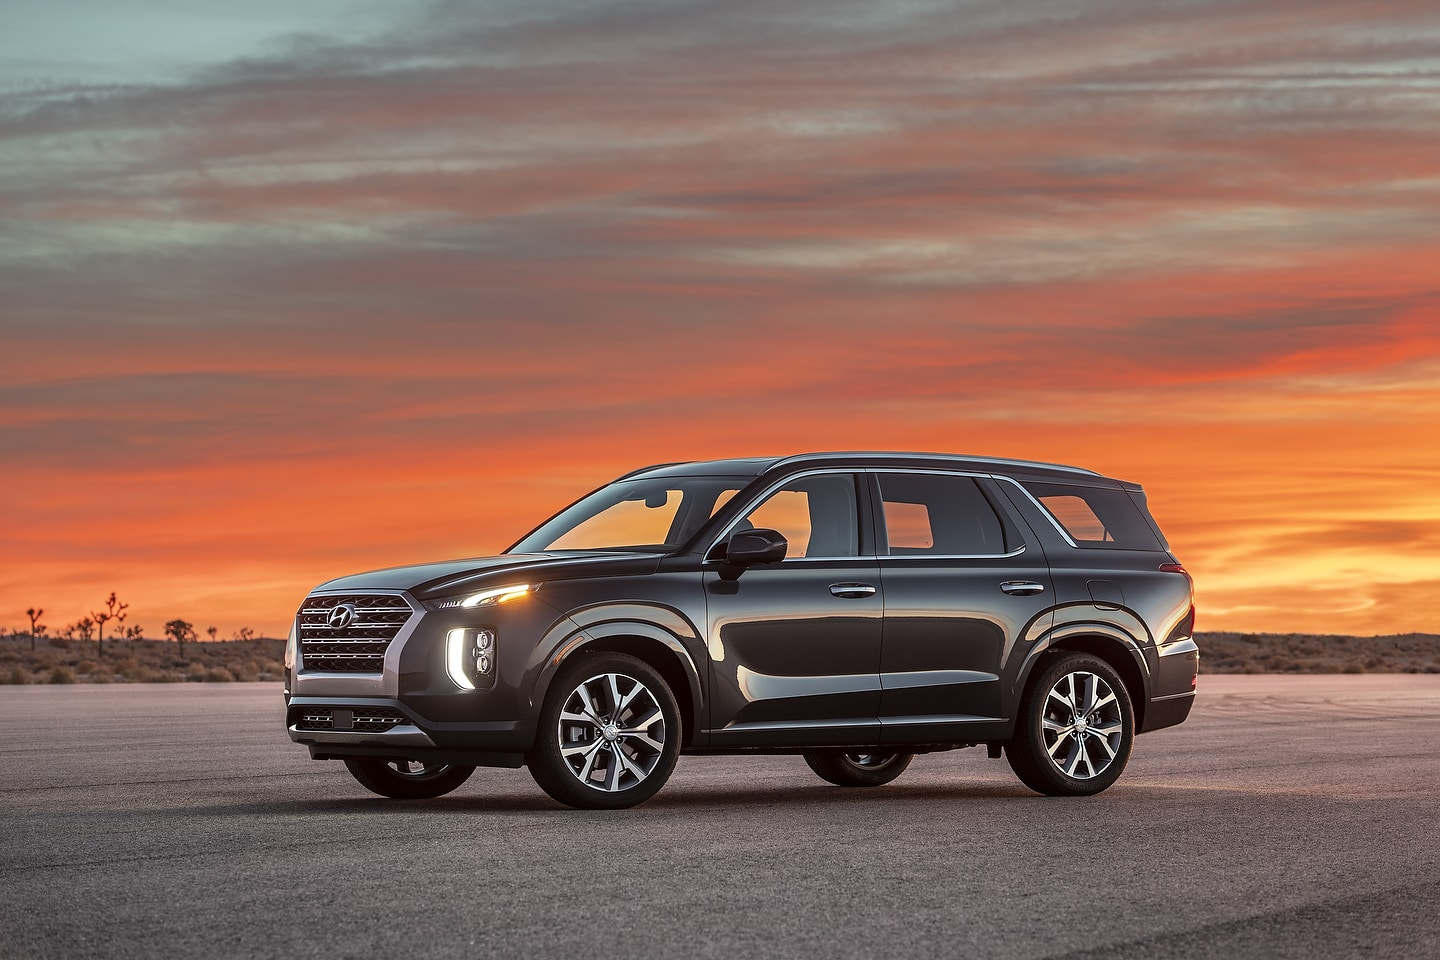 5 Questions About The New 2020 Hyundai Palisade Answered